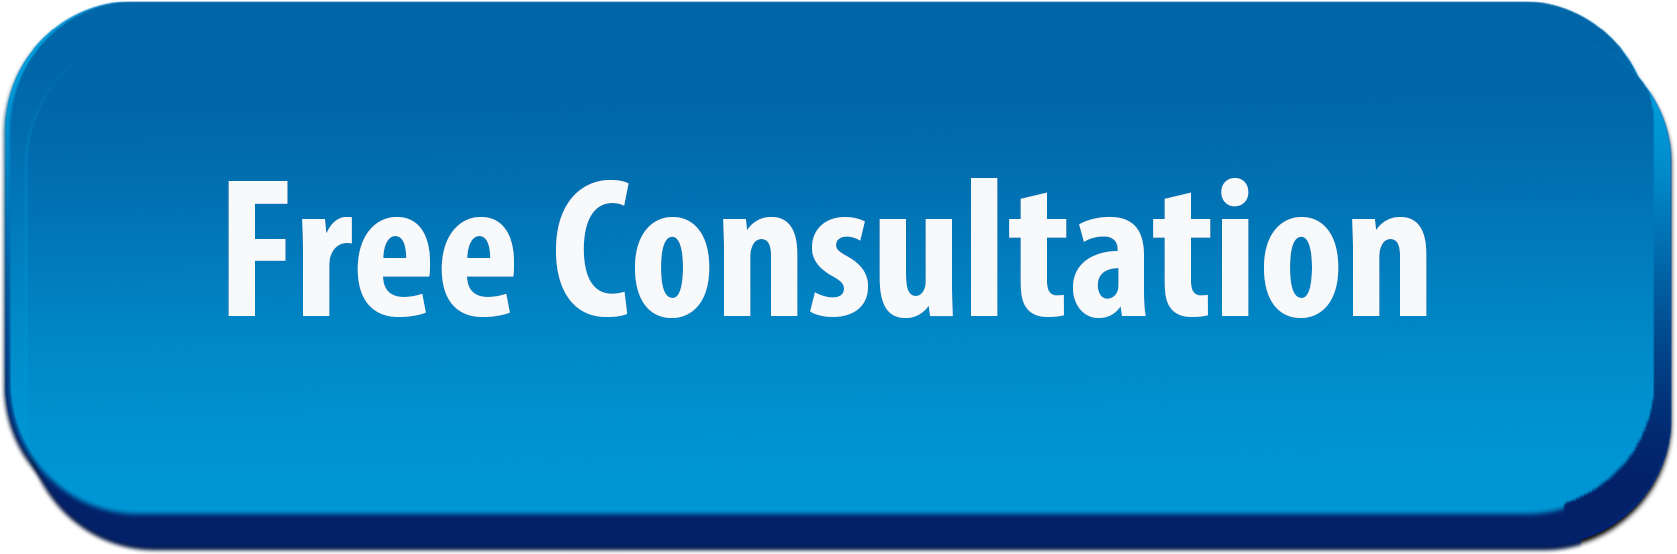 279-2799044_freeeee-get-a-free-consultation.png